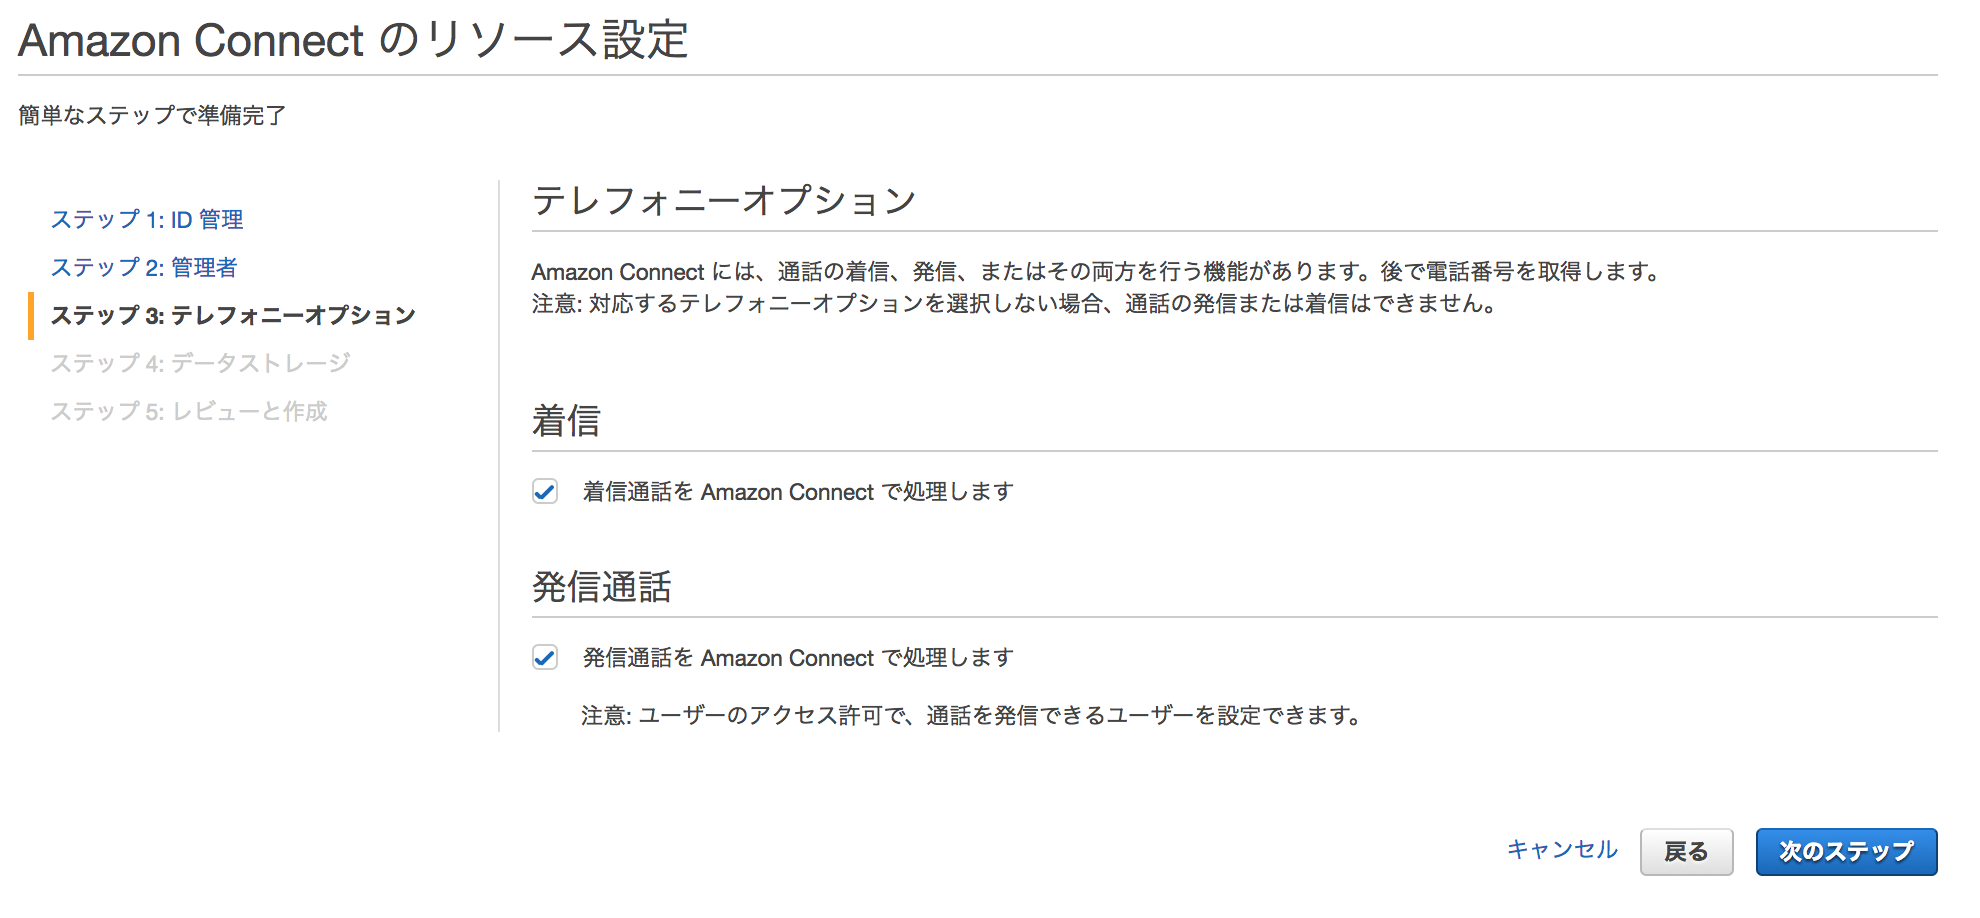 Amazon_Connect_5